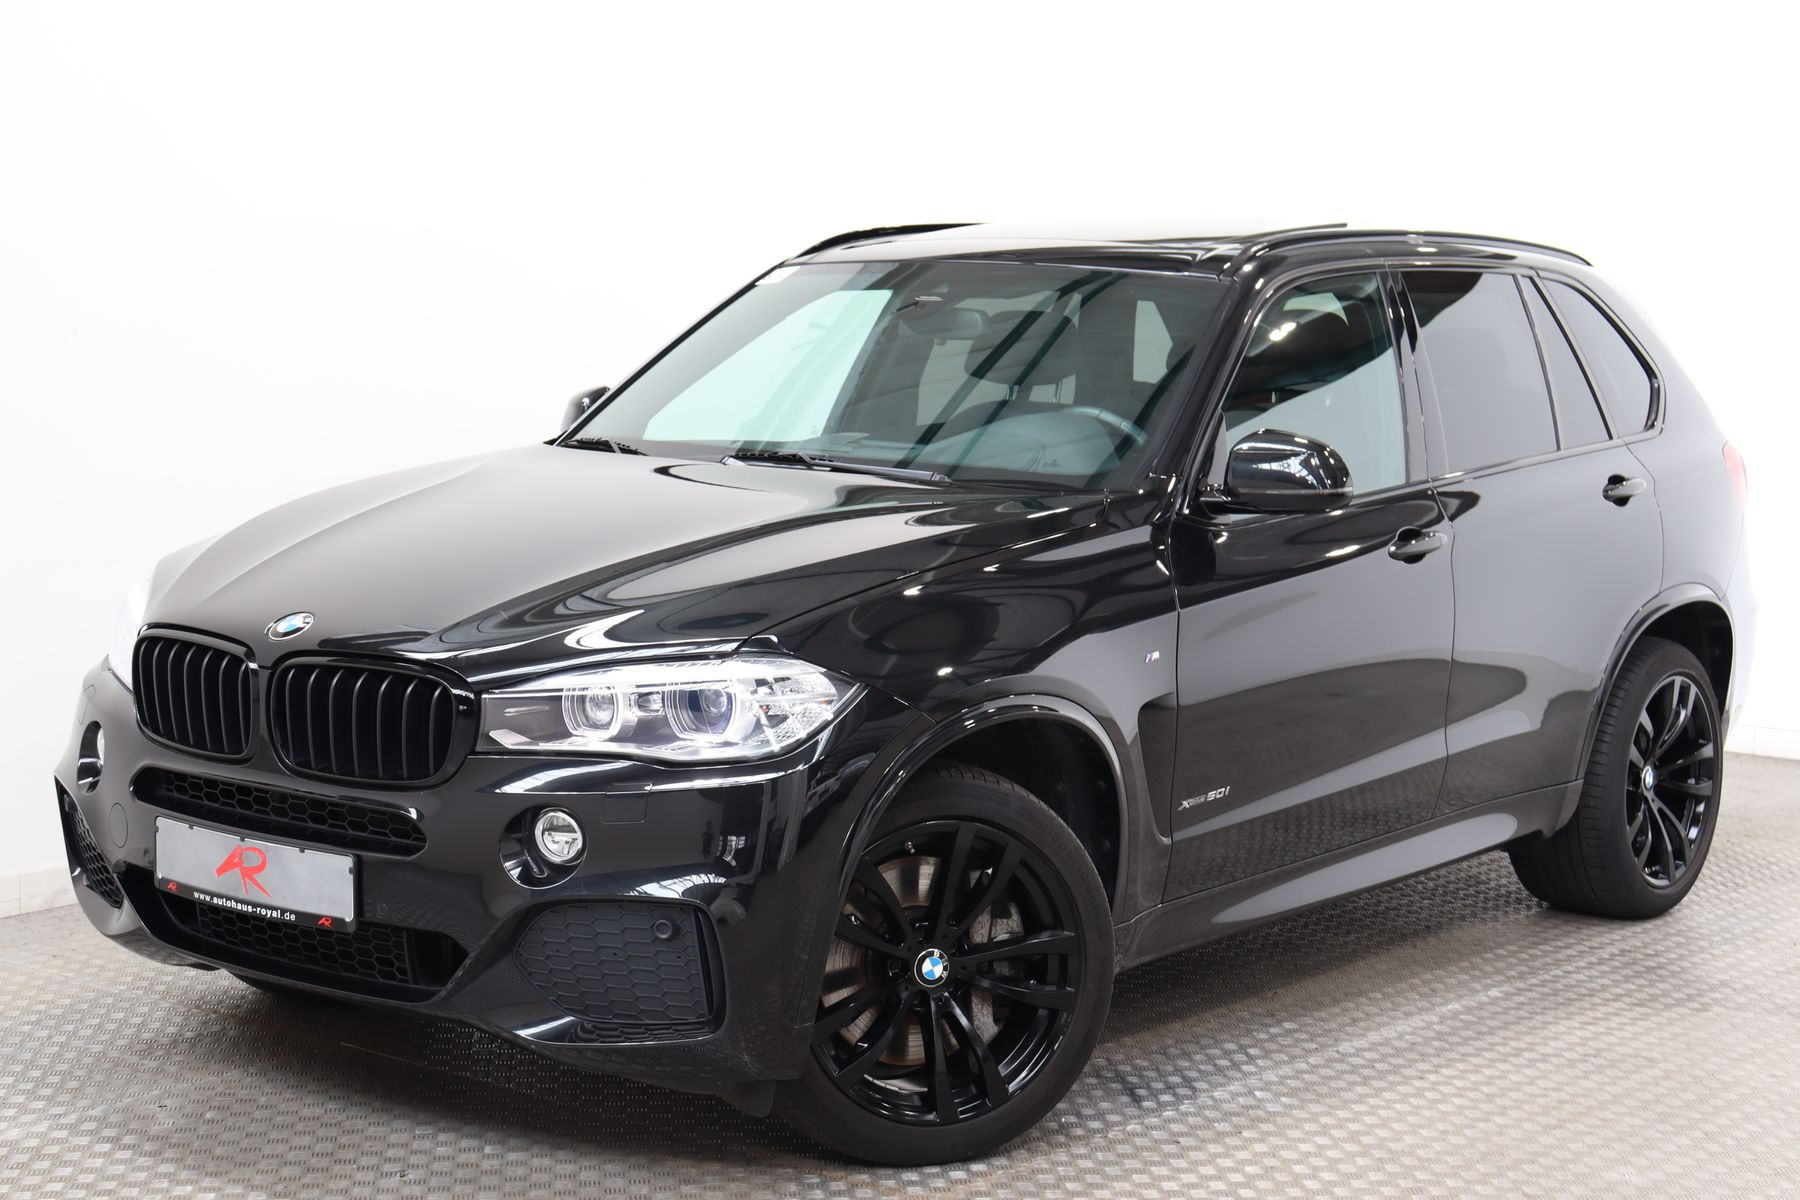 BMW X5 xDrive50i M SPORT BANG+O HIGH END,SOFTCLOSE, Jahr 2014, Benzin